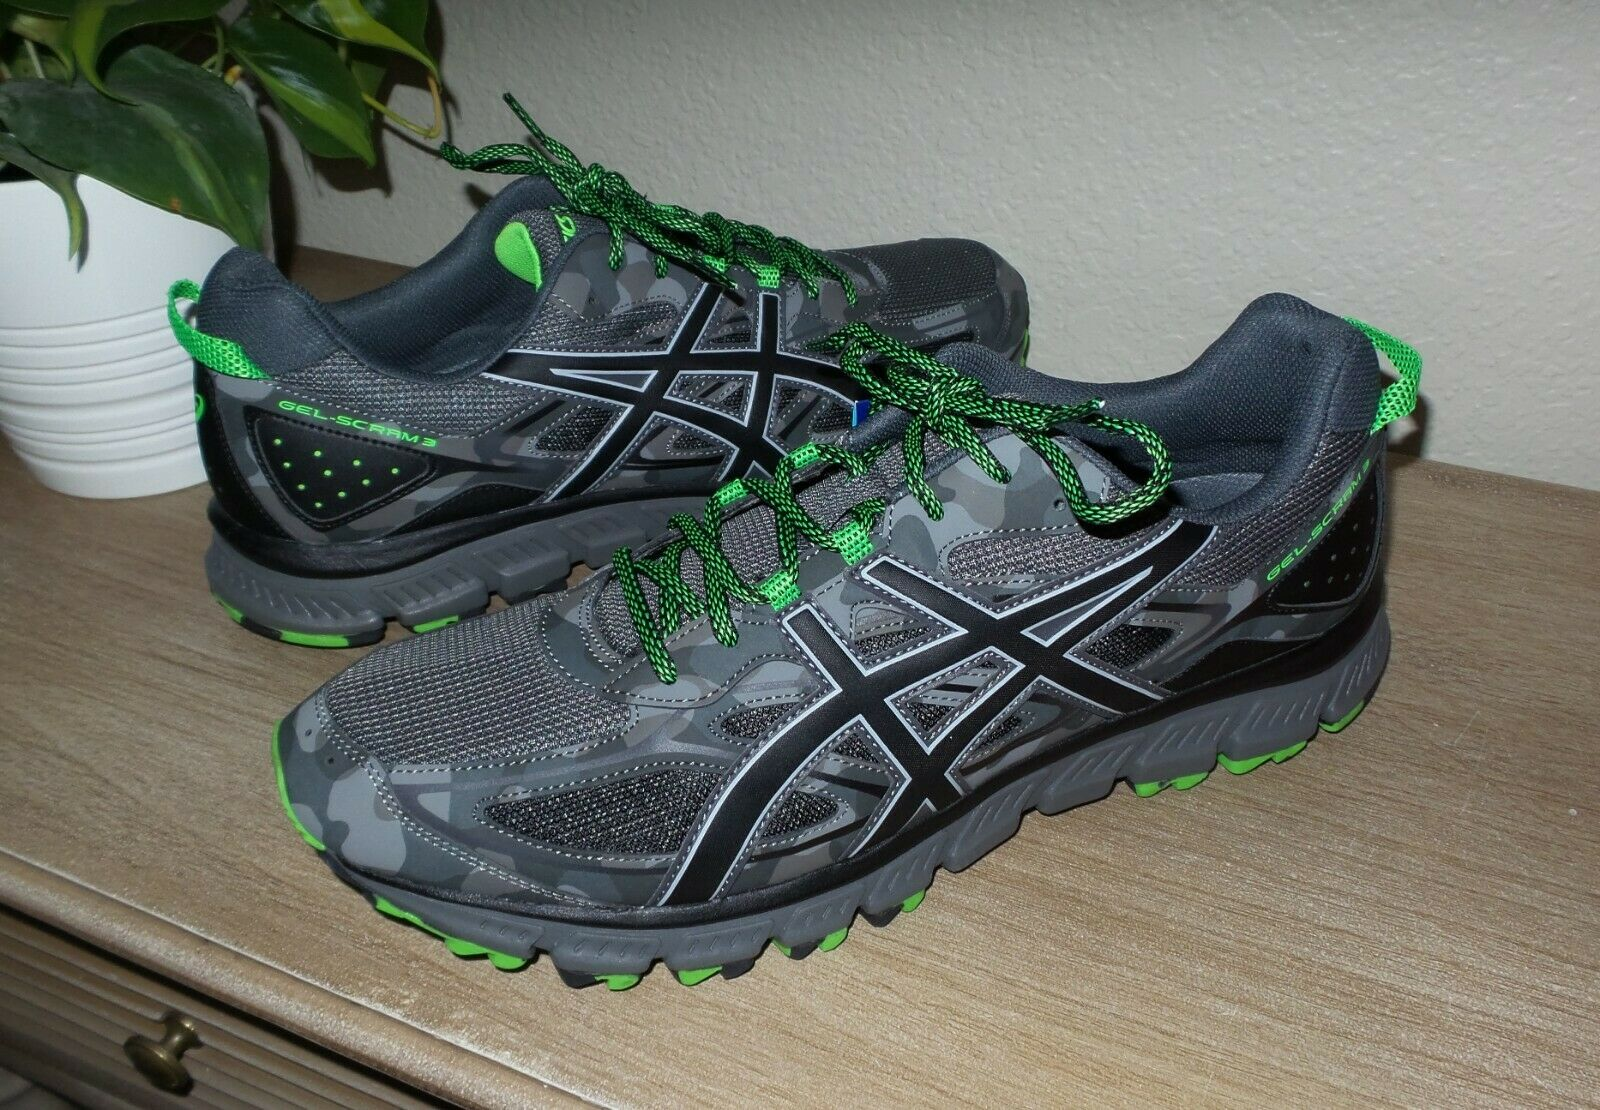 Men's Men's Men's ASICS Gel-Scram 3 Trail Running shoes Athletic Sneakers 15 NEW Camouflage 7f1ae5